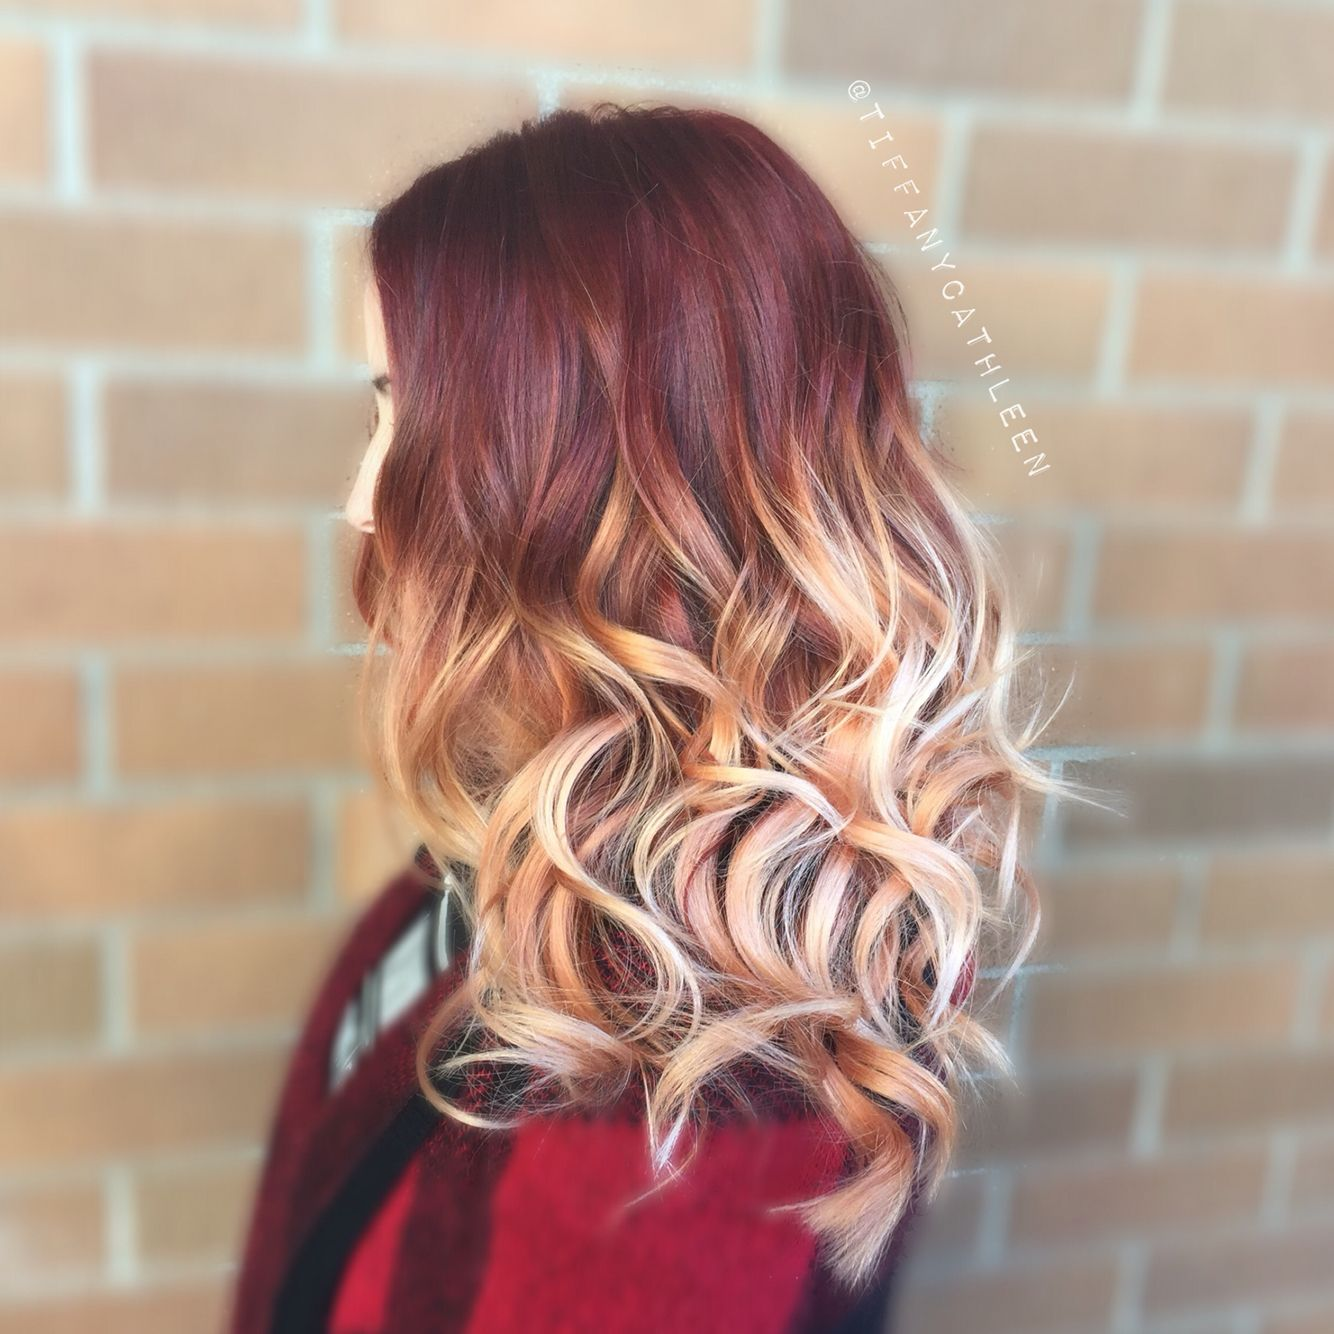 Burgundy Into Rose Gold Balayage Ombre I Love This Hair Color Burgundy Hair Ombre Hair Ombre Hair Blonde